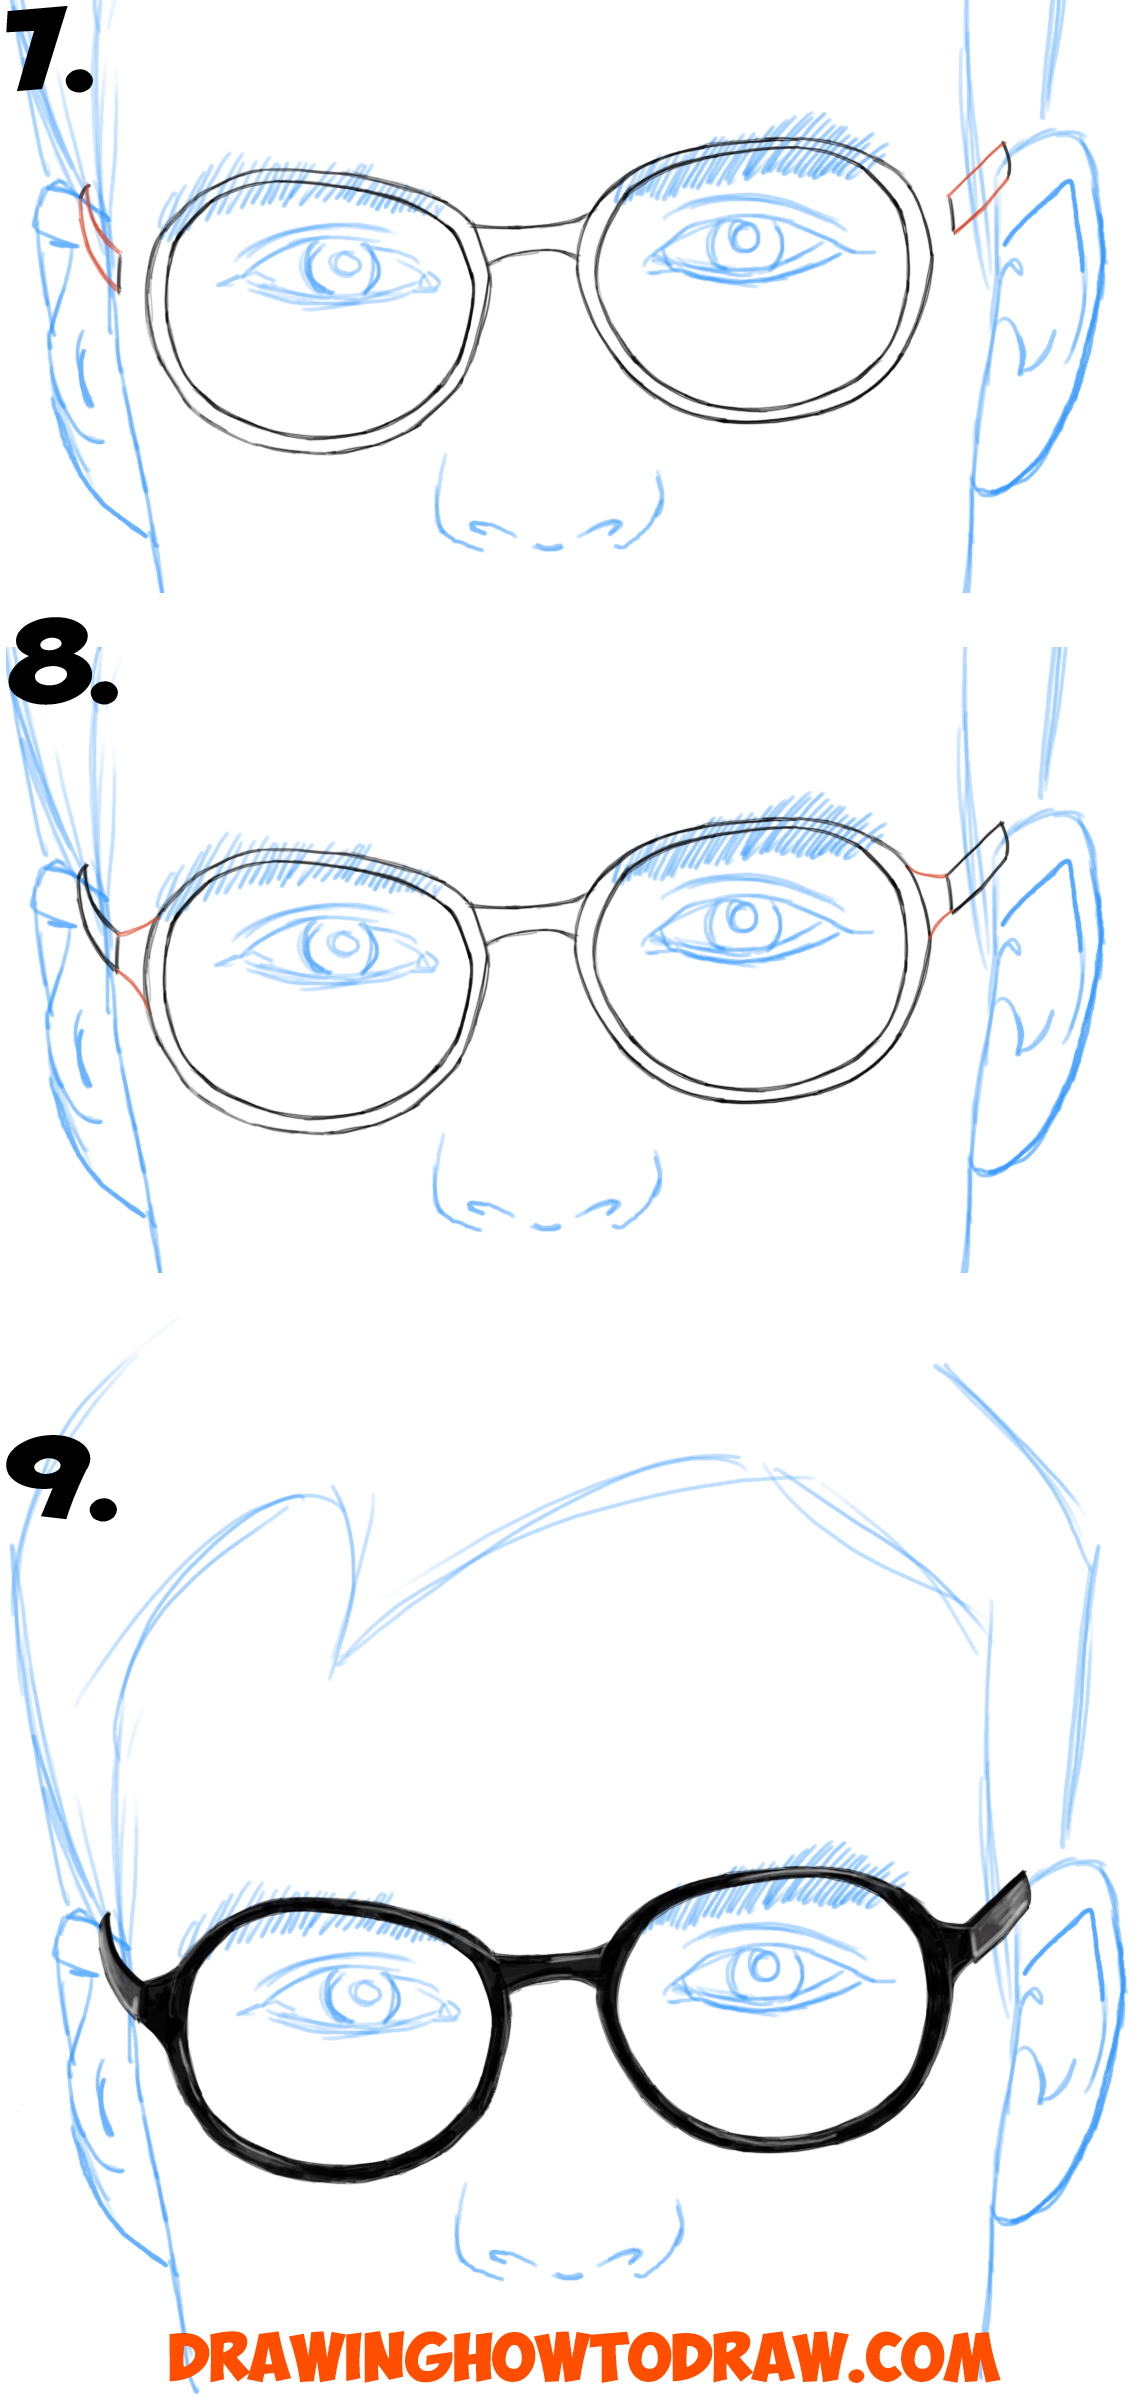 How To Draw Glasses On A Face From The Front View In Simple Steps Lesson For